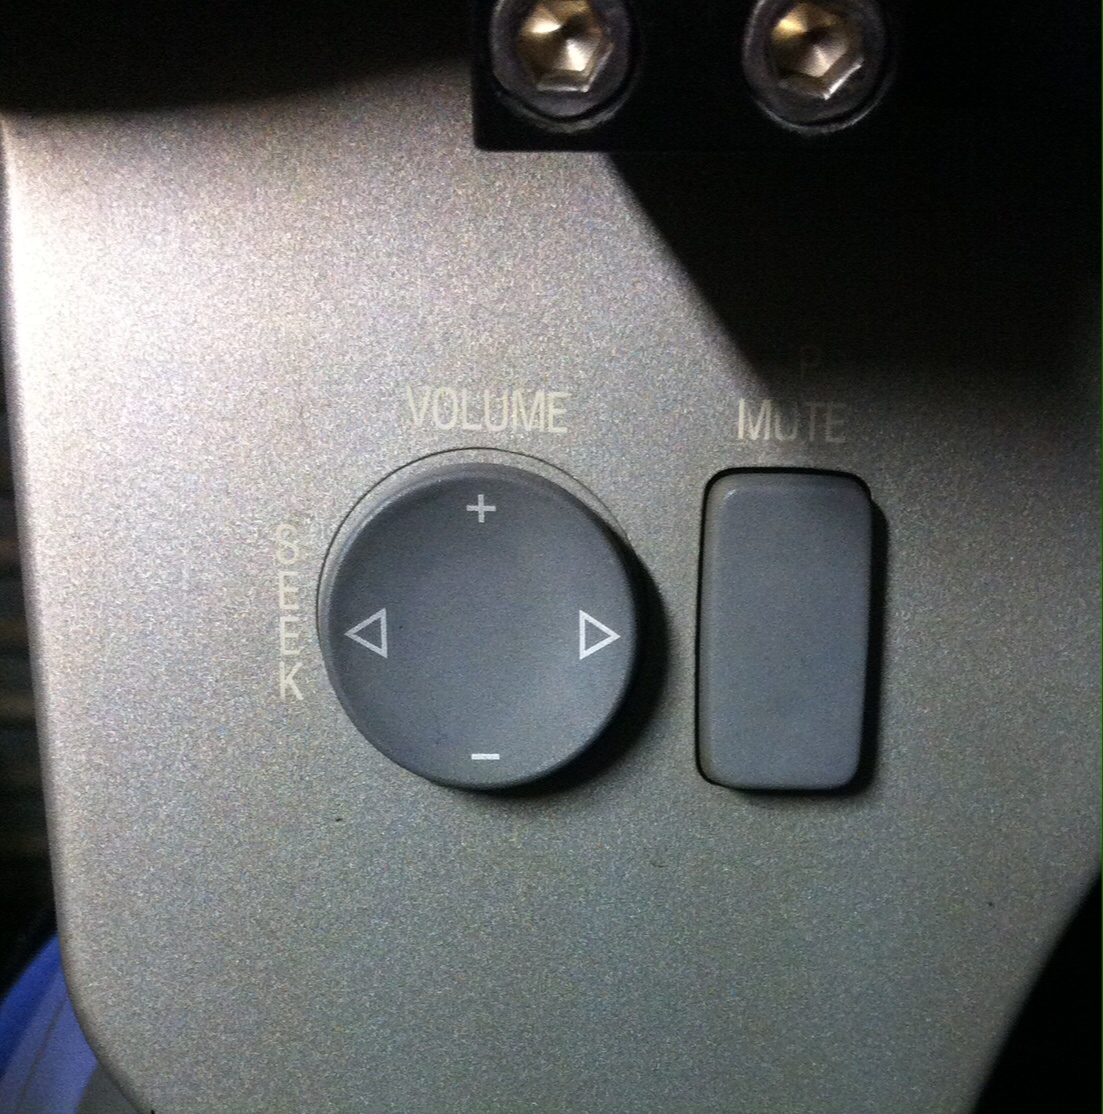 2004 K1200lt Stereo Replacement With Handlebar Controls Intact